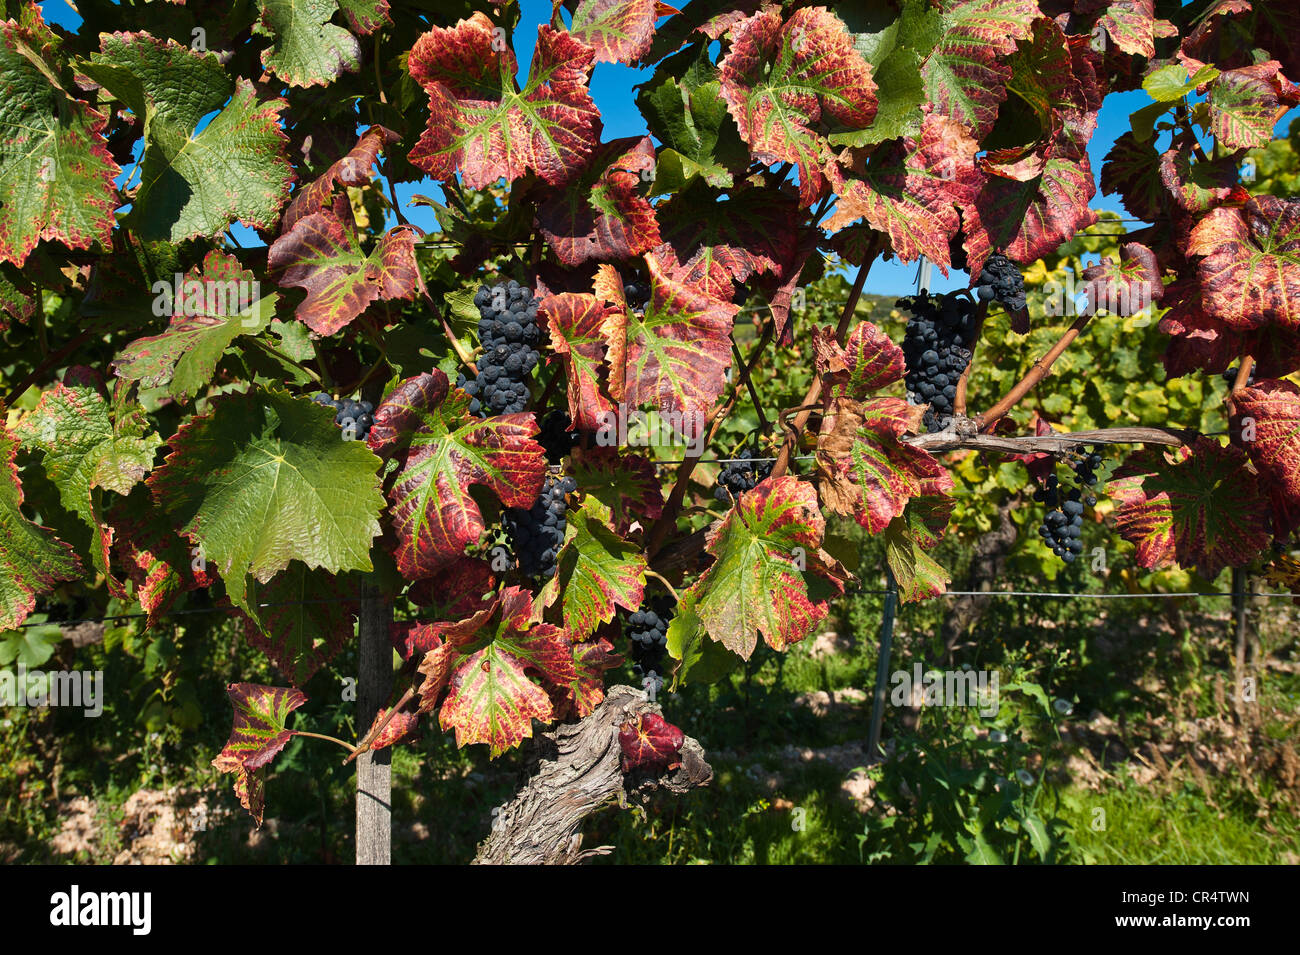 how to care for grape vines in the fall